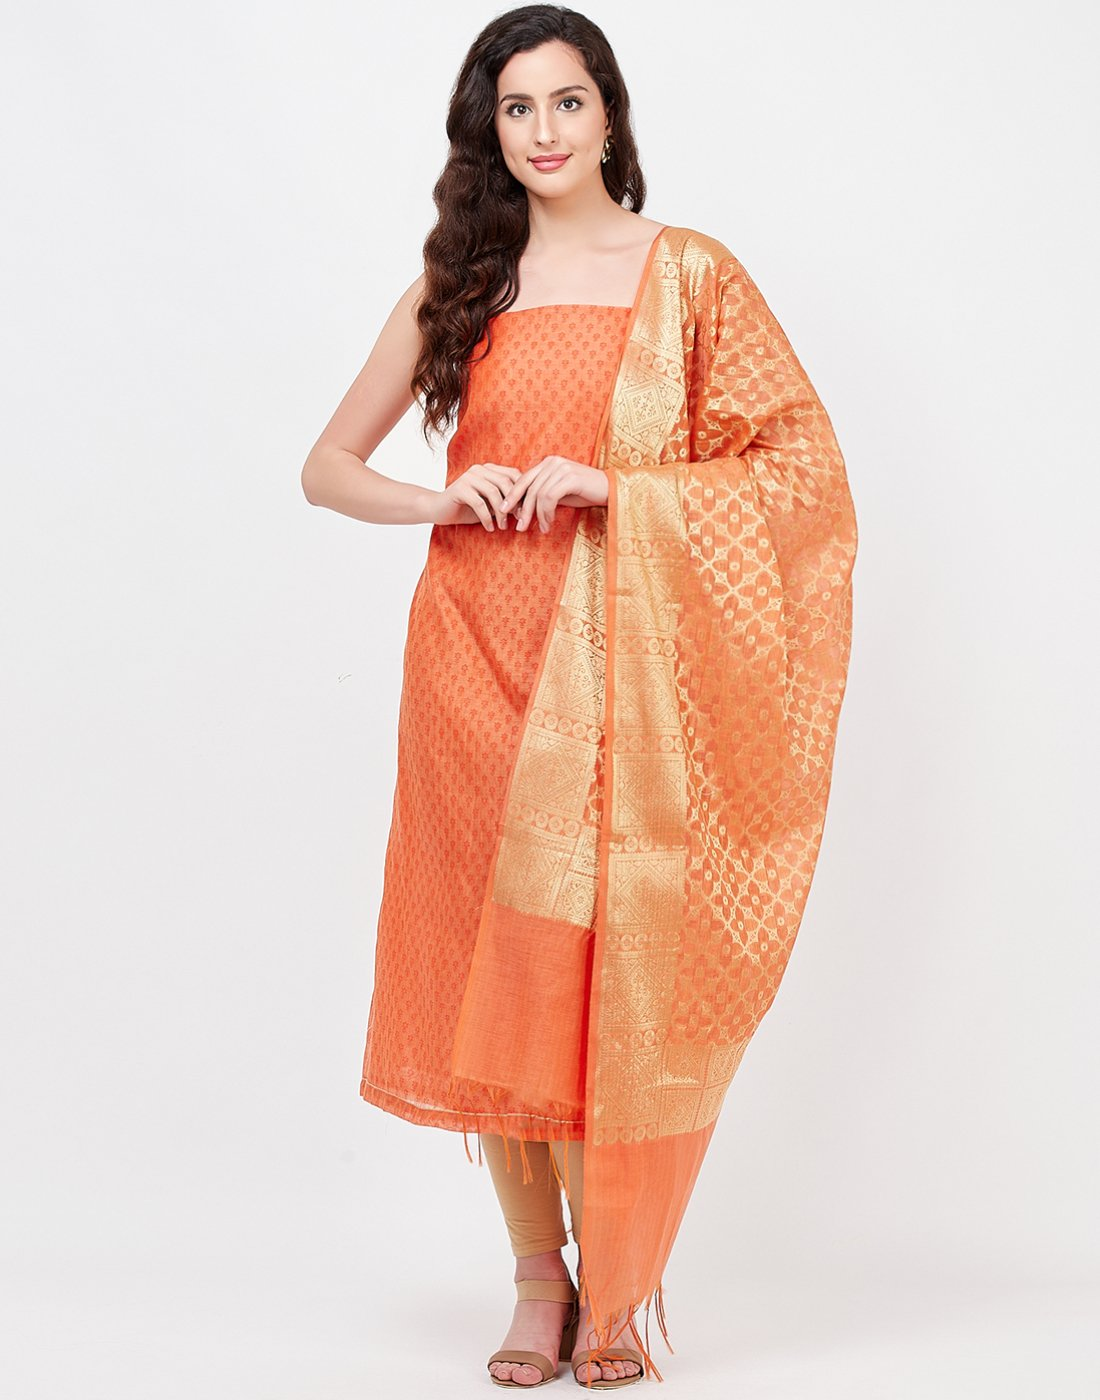 MBZ Meena Bazaar-Peach Beige Chanderi Suit Set